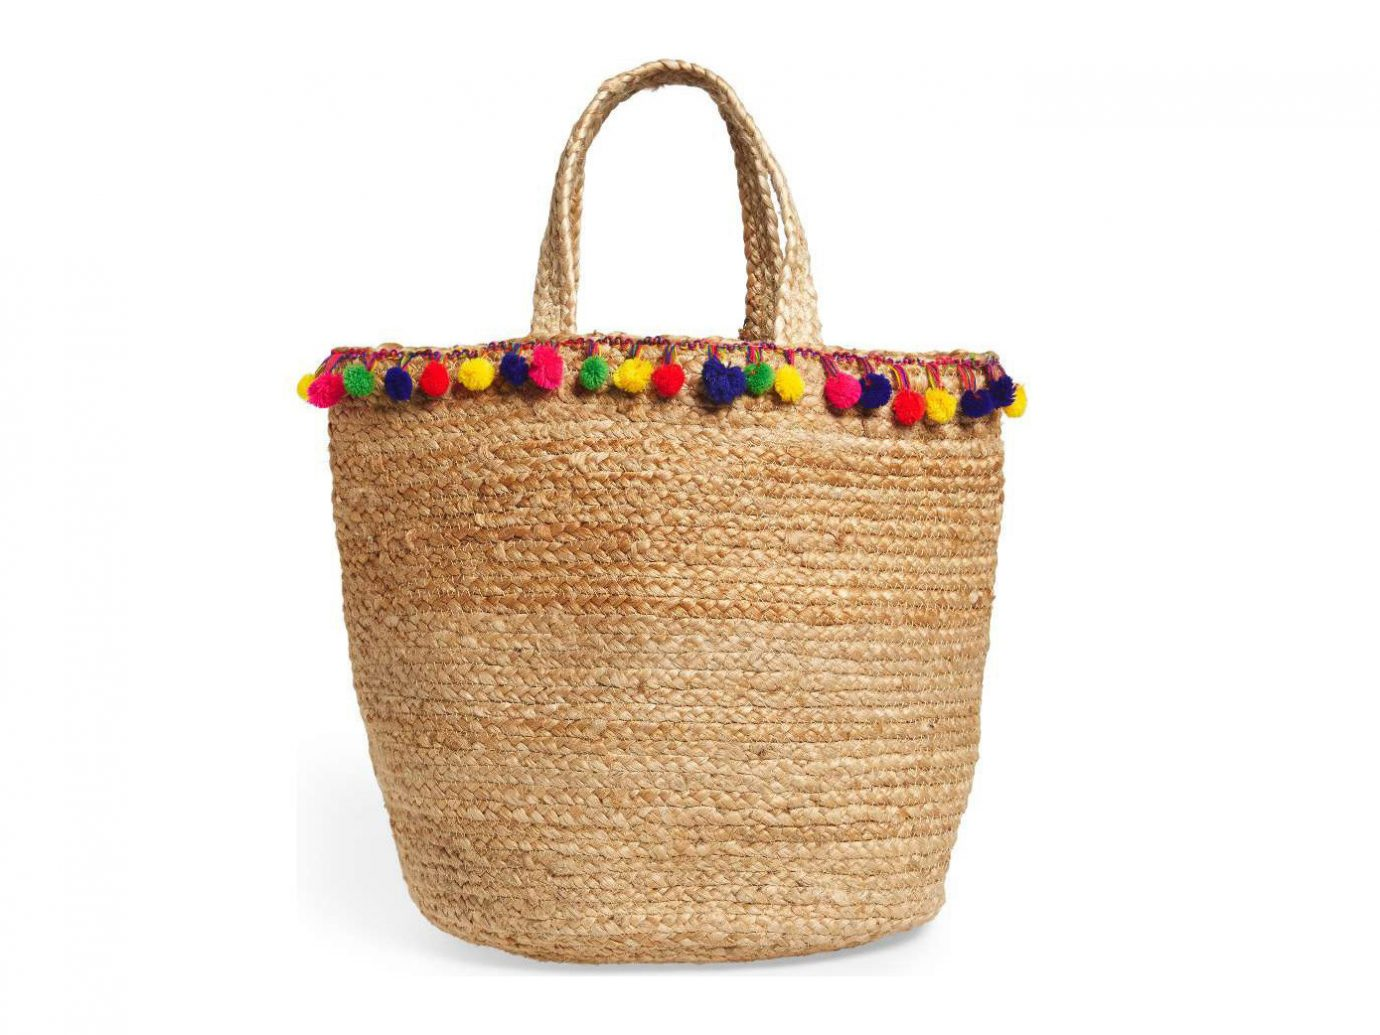 Style + Design straw handbag basket bag accessory colored